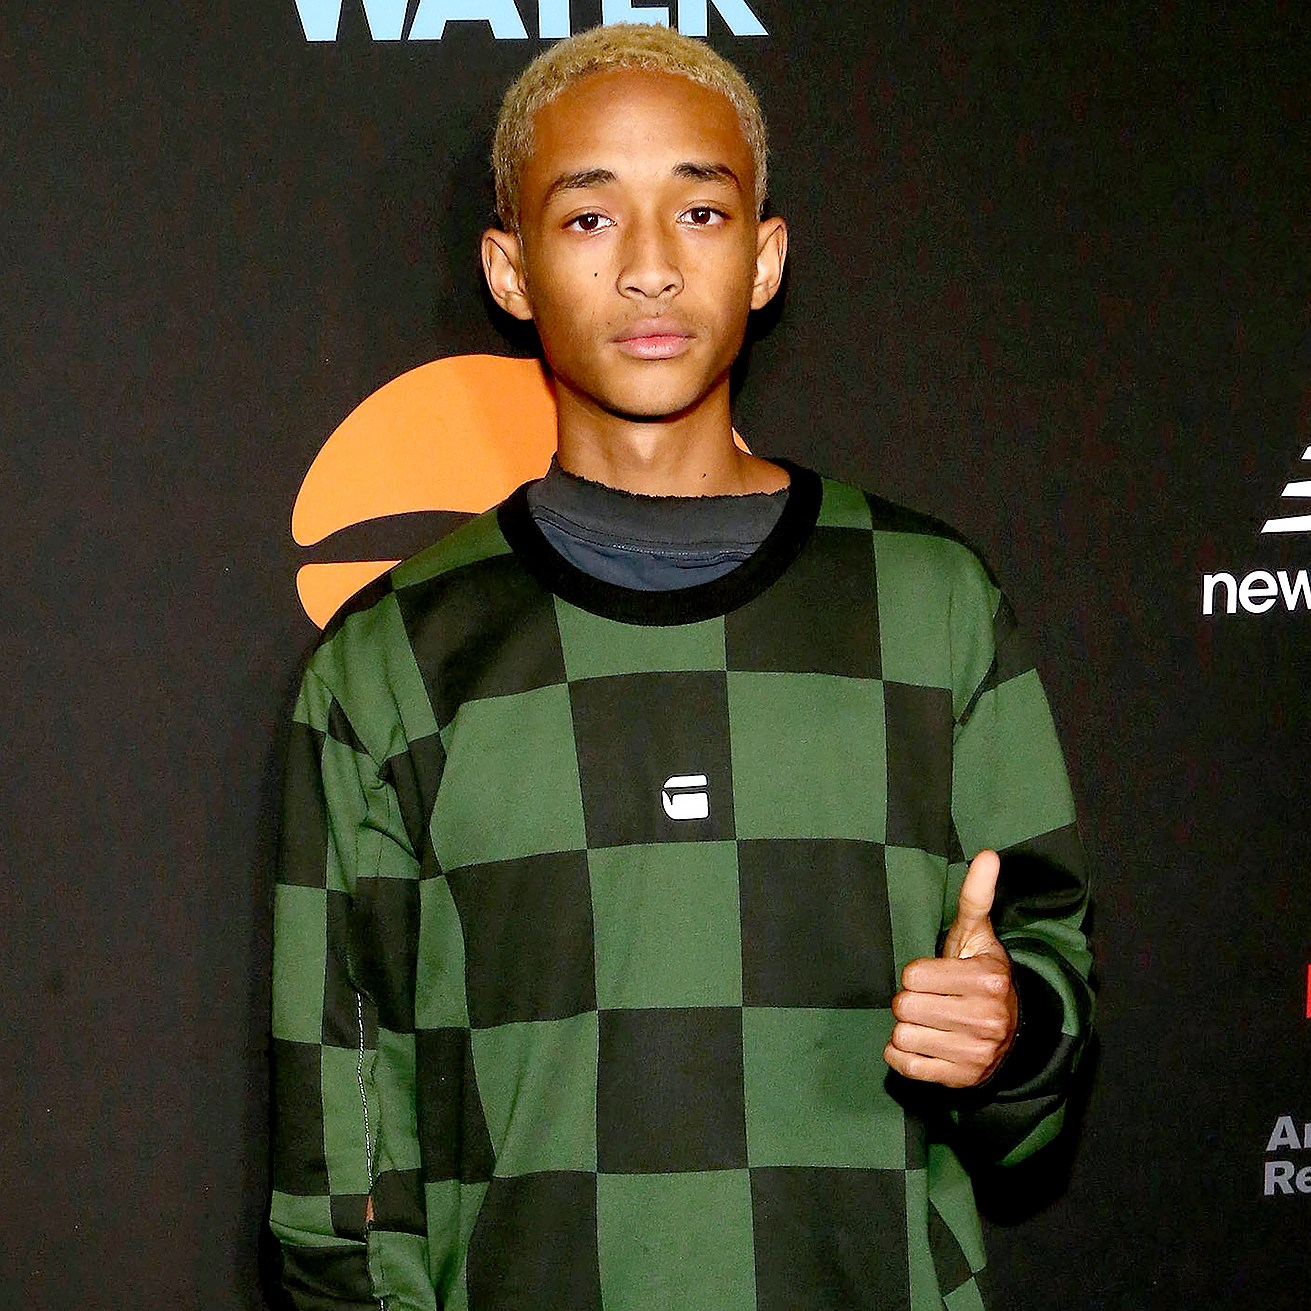 Jaden Smith attends the Umami Burger x Jaden Smith Artist Series Launch Event at The Grove in Los Angeles on October 11, 2017.